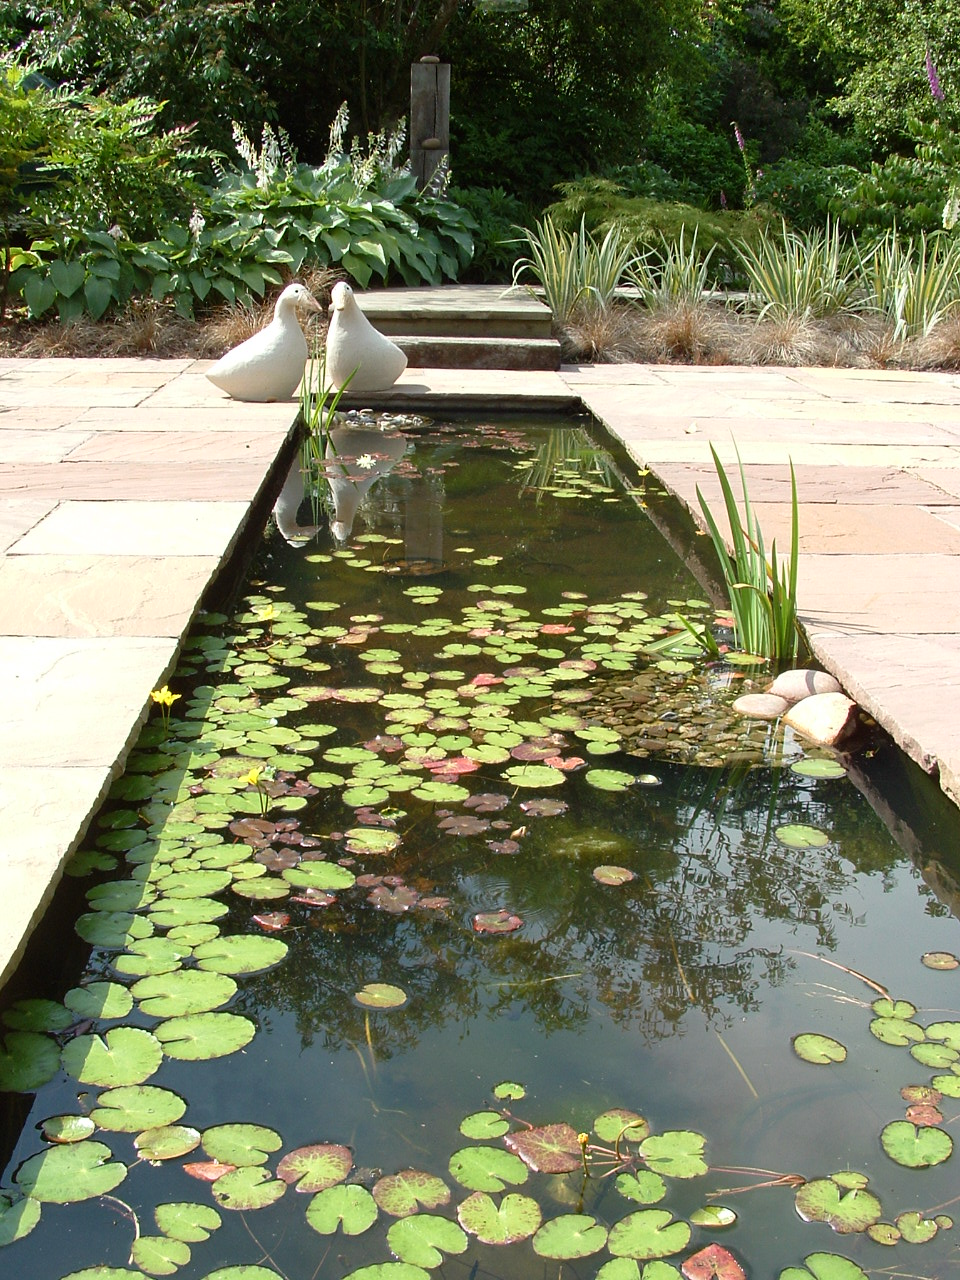 Formal water feature cut into a contemporary terrace garden with woodland planting behind.